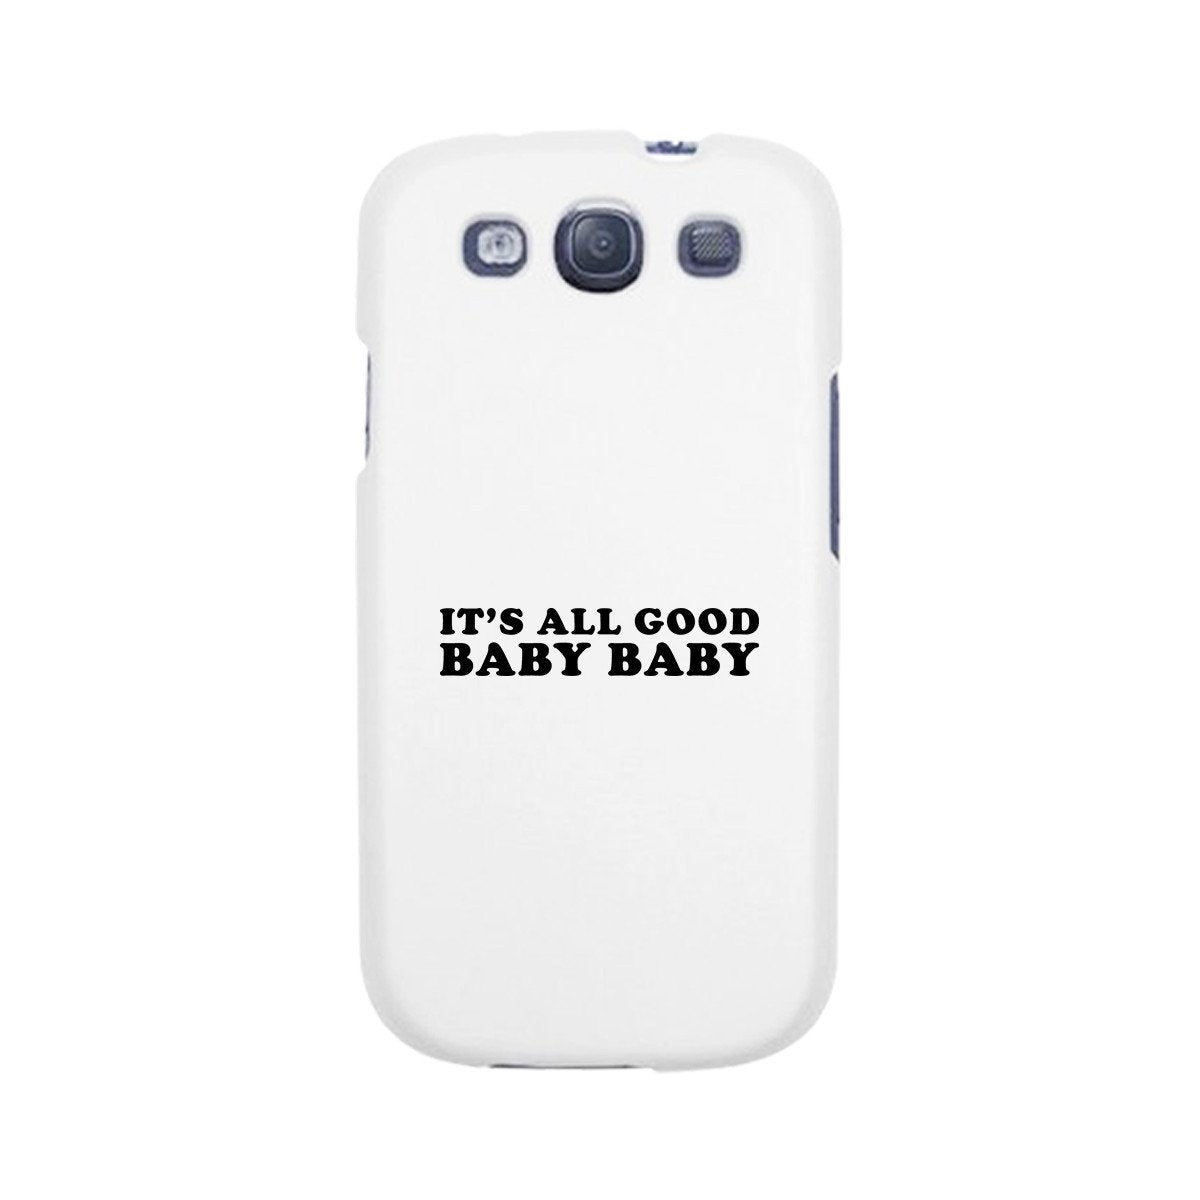 It's All Good Baby White Phone Case